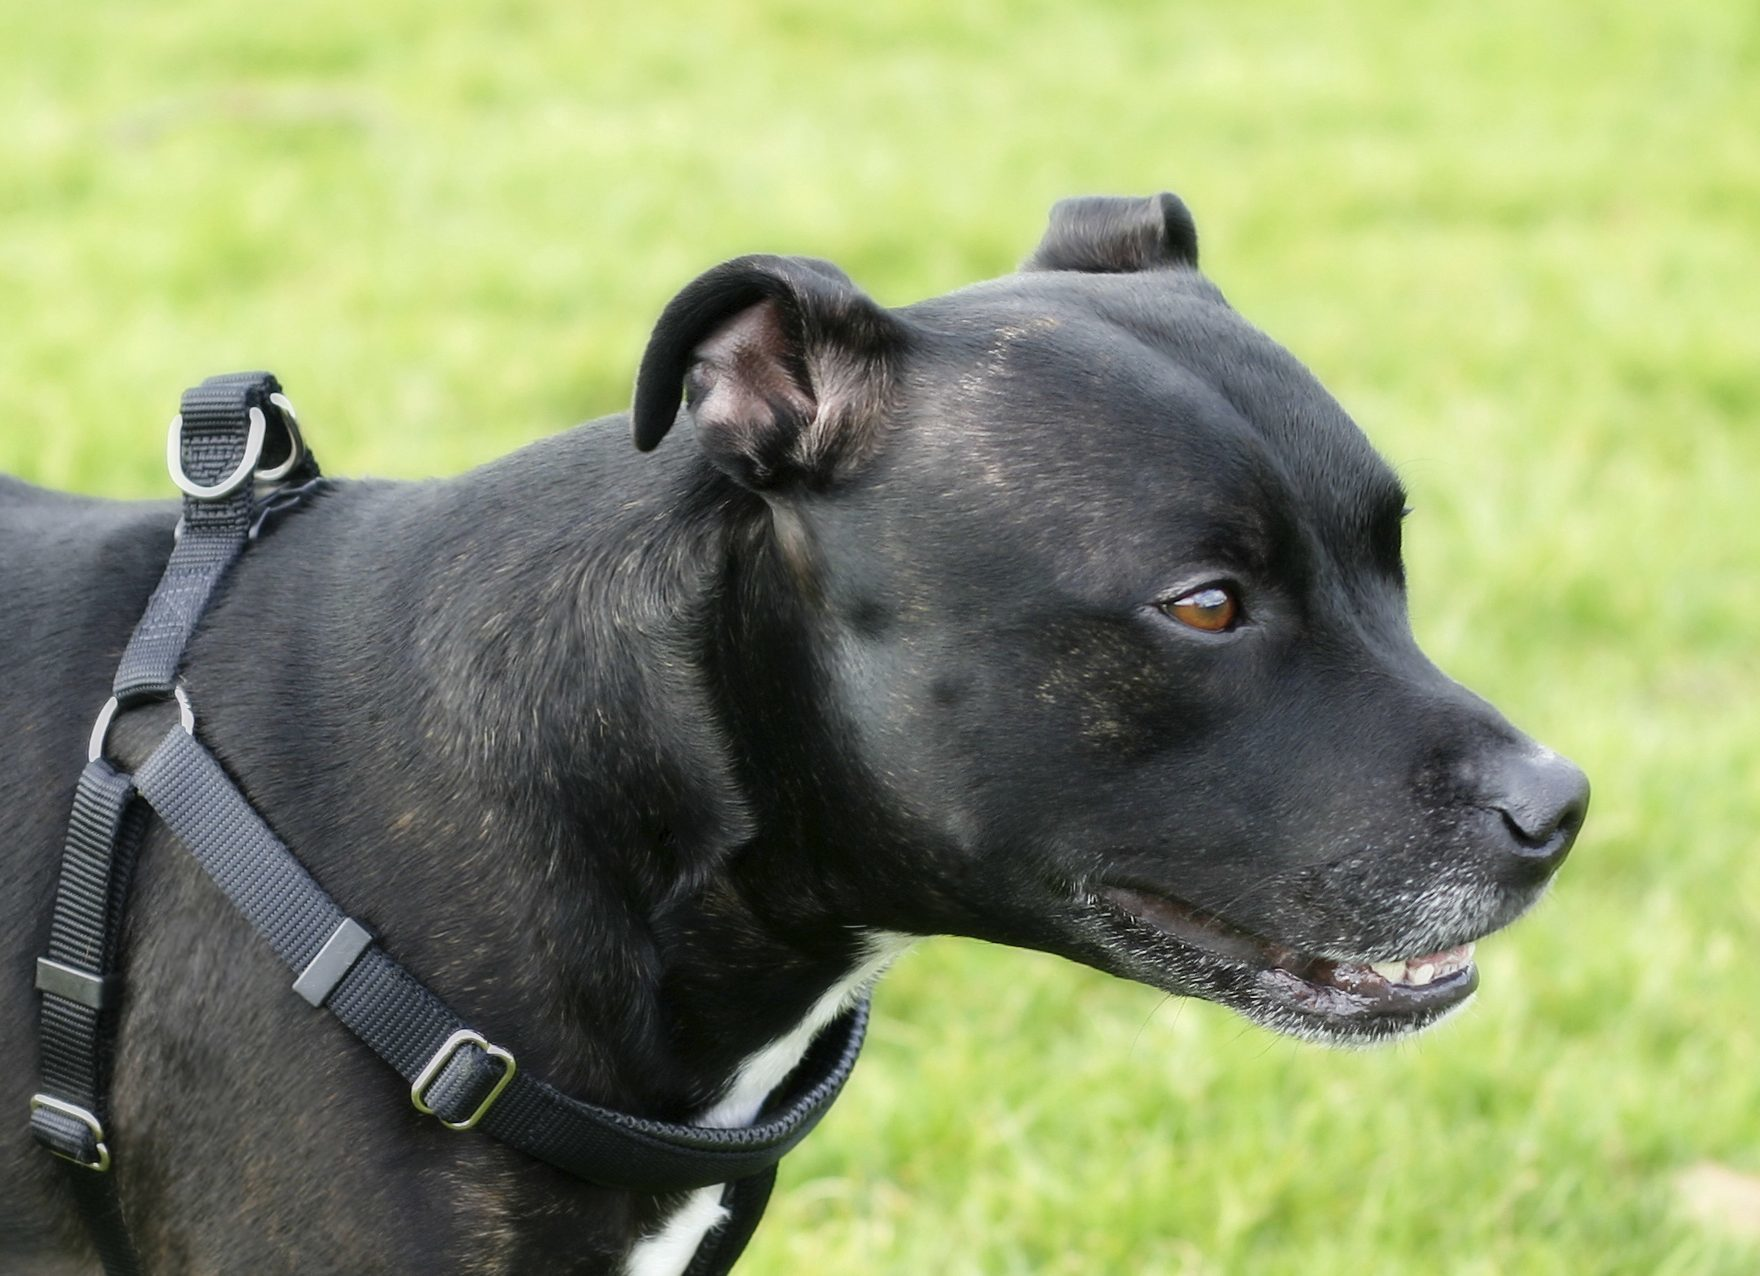 The pensioner said she was set upon by a  Staffordshire Bull Terrier.